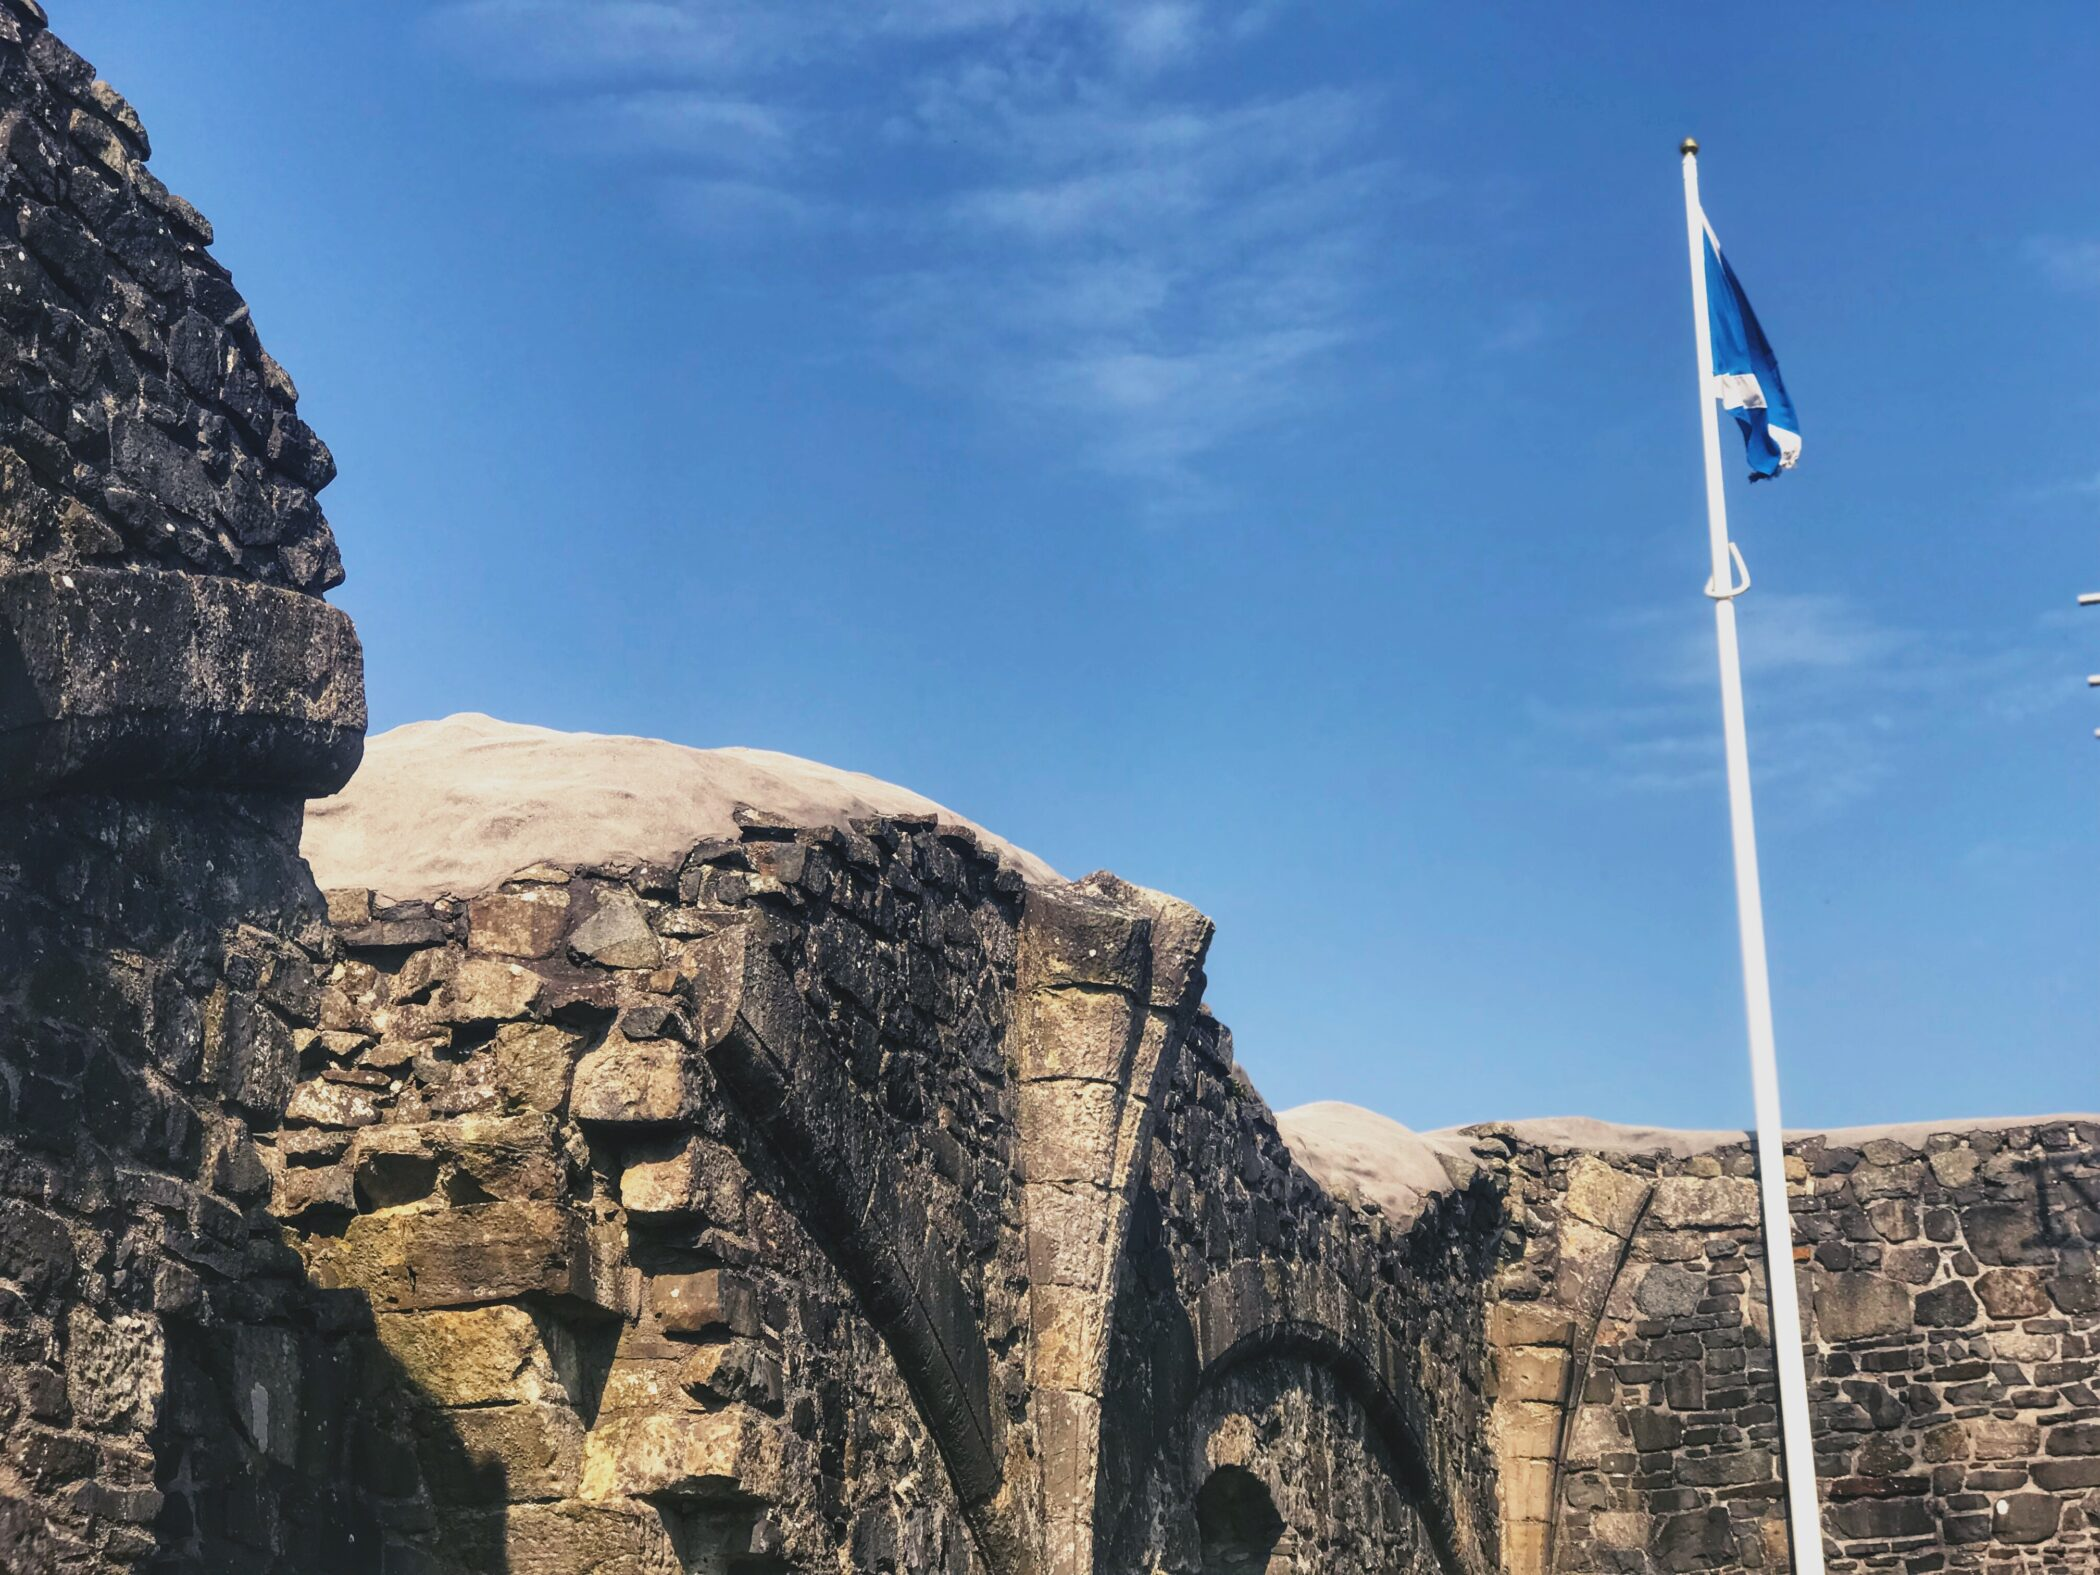 The top of Dundonald castle with a Scottish flag flying against the blue sky